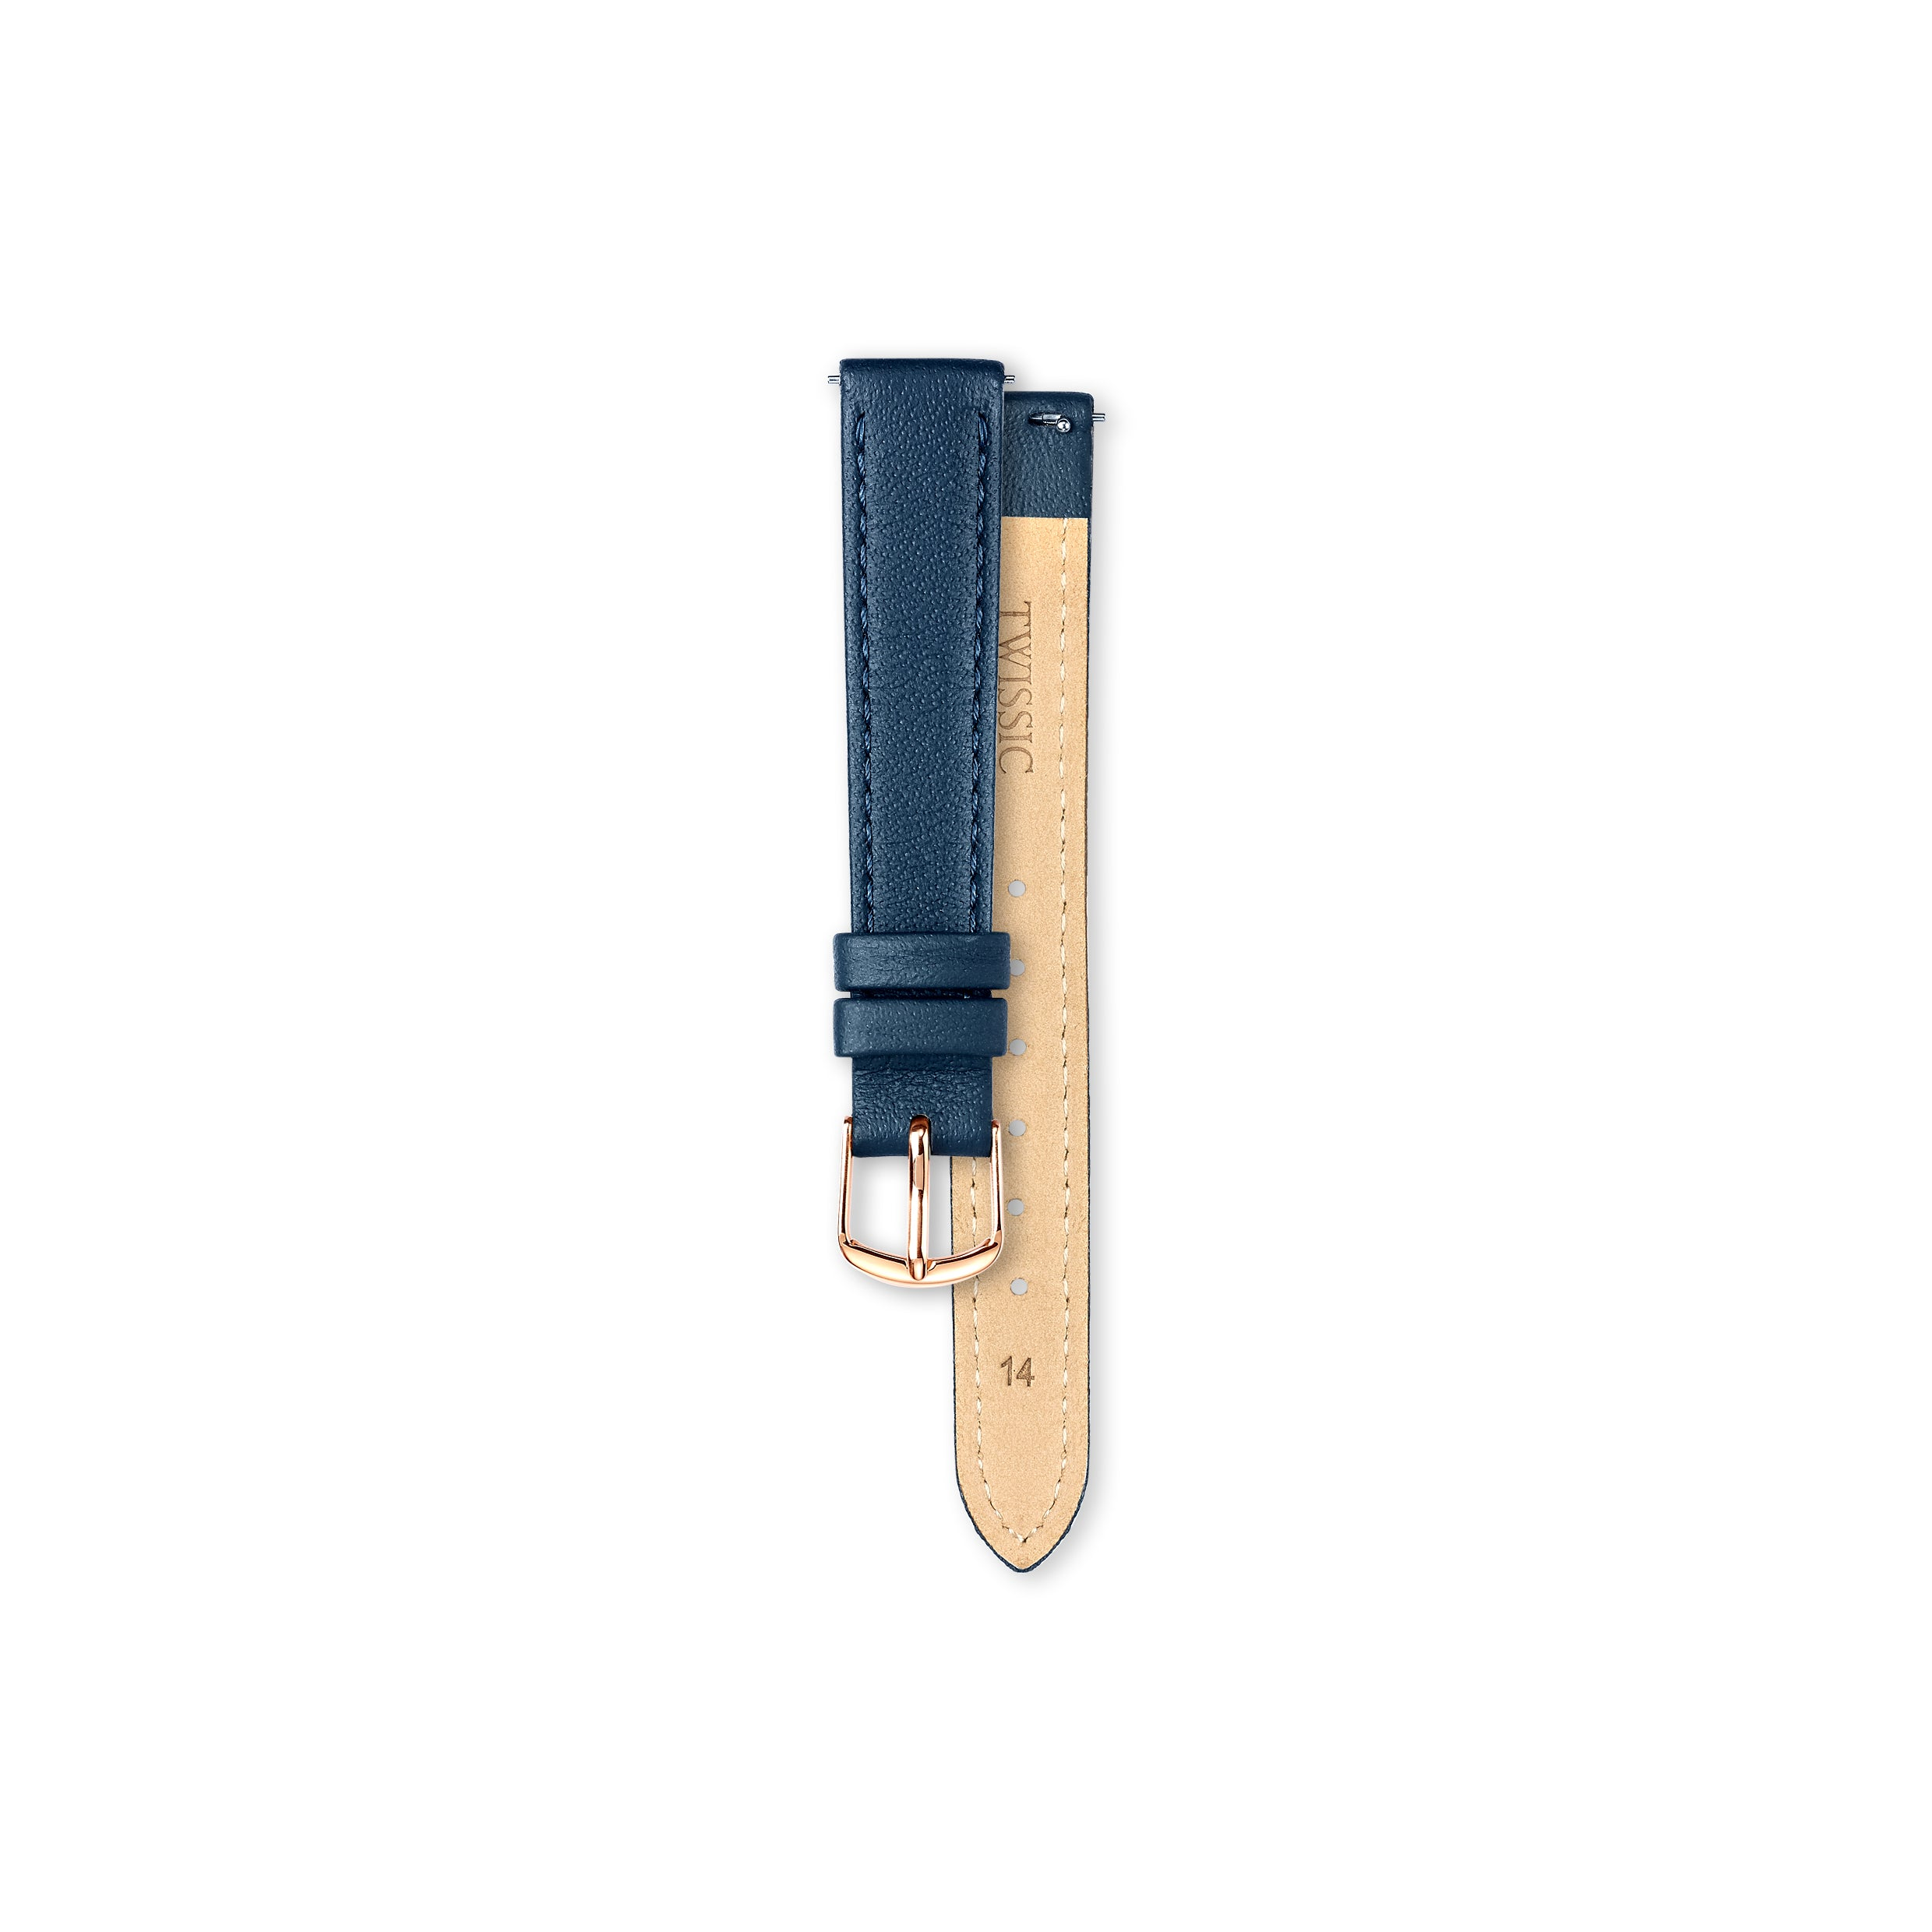 Leather Strap Rosegold - 14mm